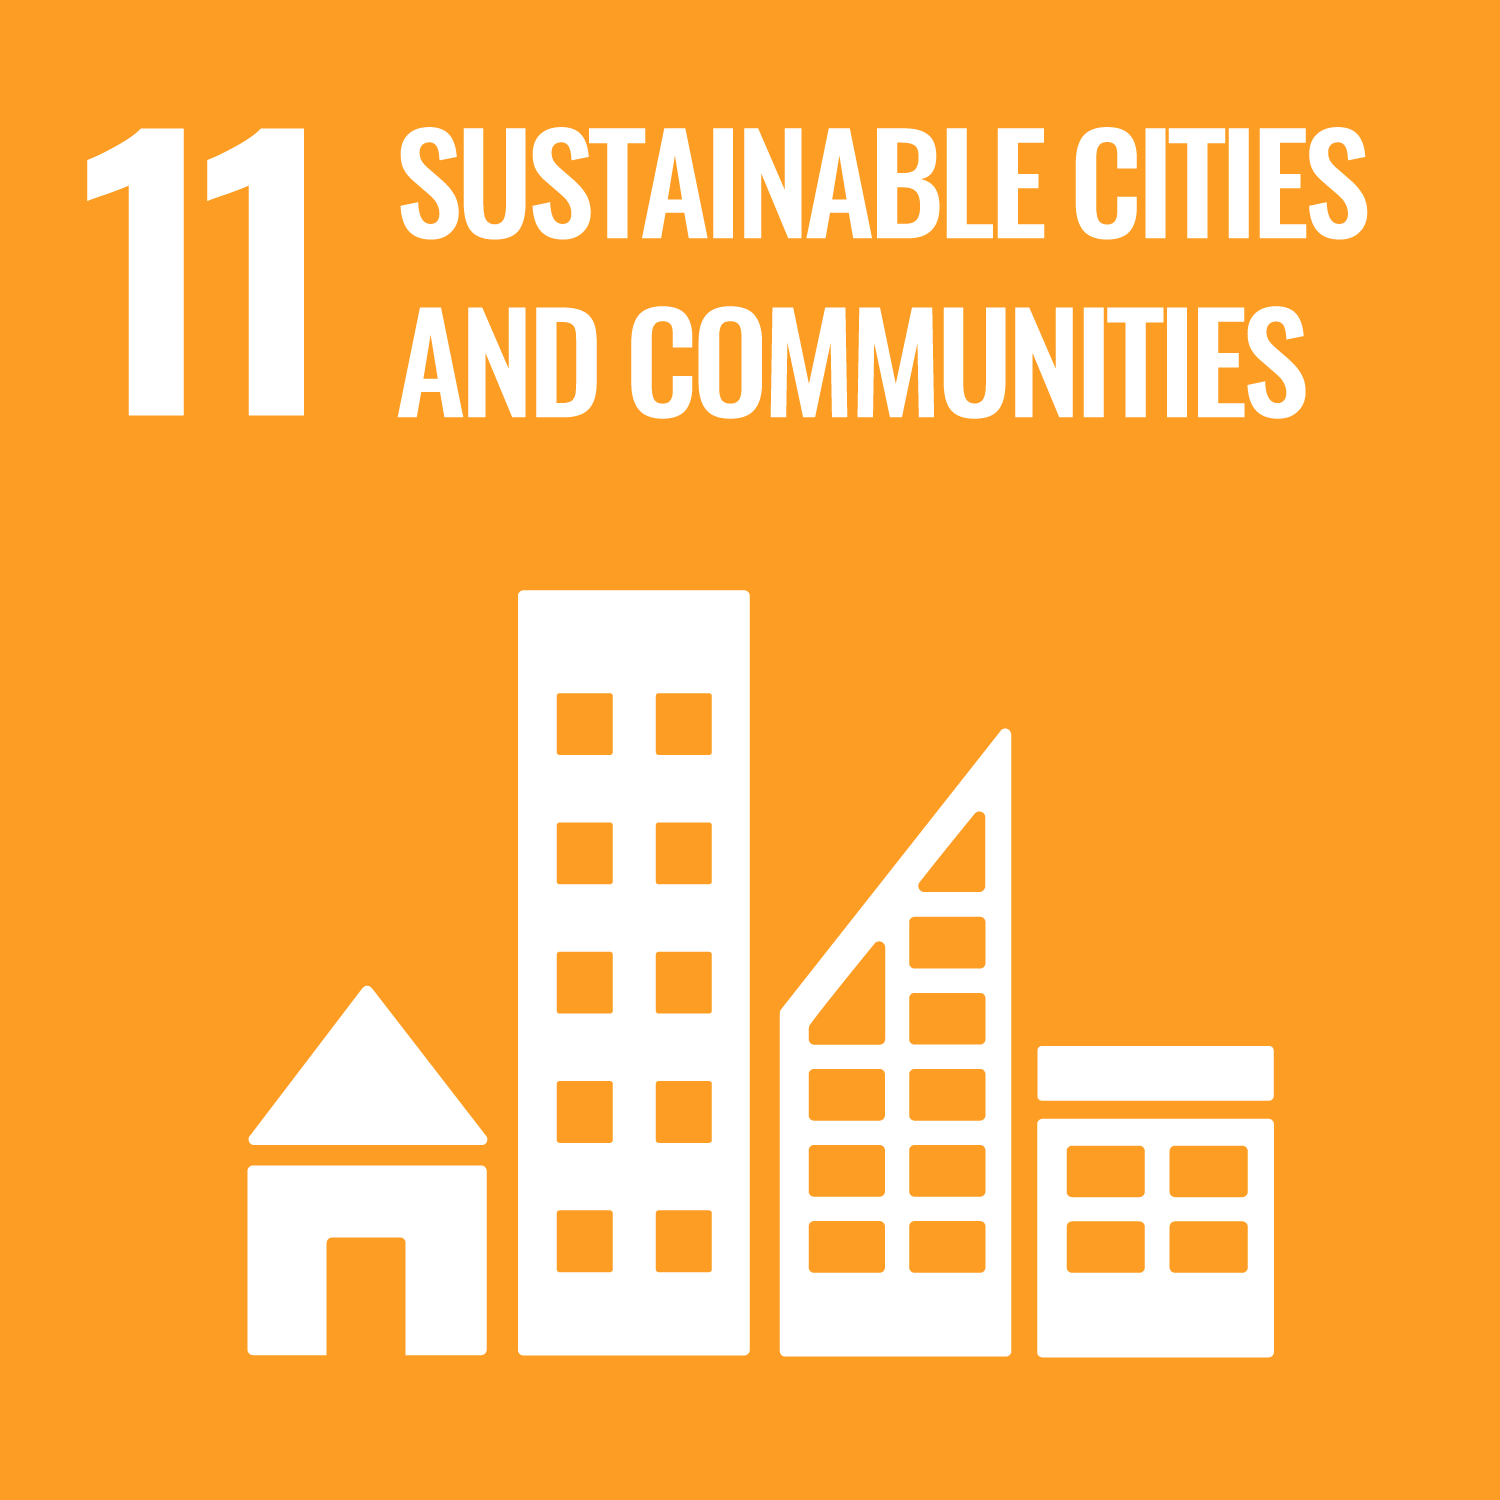 11. Sustainable cities and communities We want to contribute making cities and human settlements green, resource efficient, safe, inclusive and resilient. How we target this SDG? We build socially-impactful, innovative buildings. Our approach builds near zero construction waste (near zero scrap), Zero Net Energy homes. We encourage construction in environmentally preferable locations and avoid development of sensitive lands.